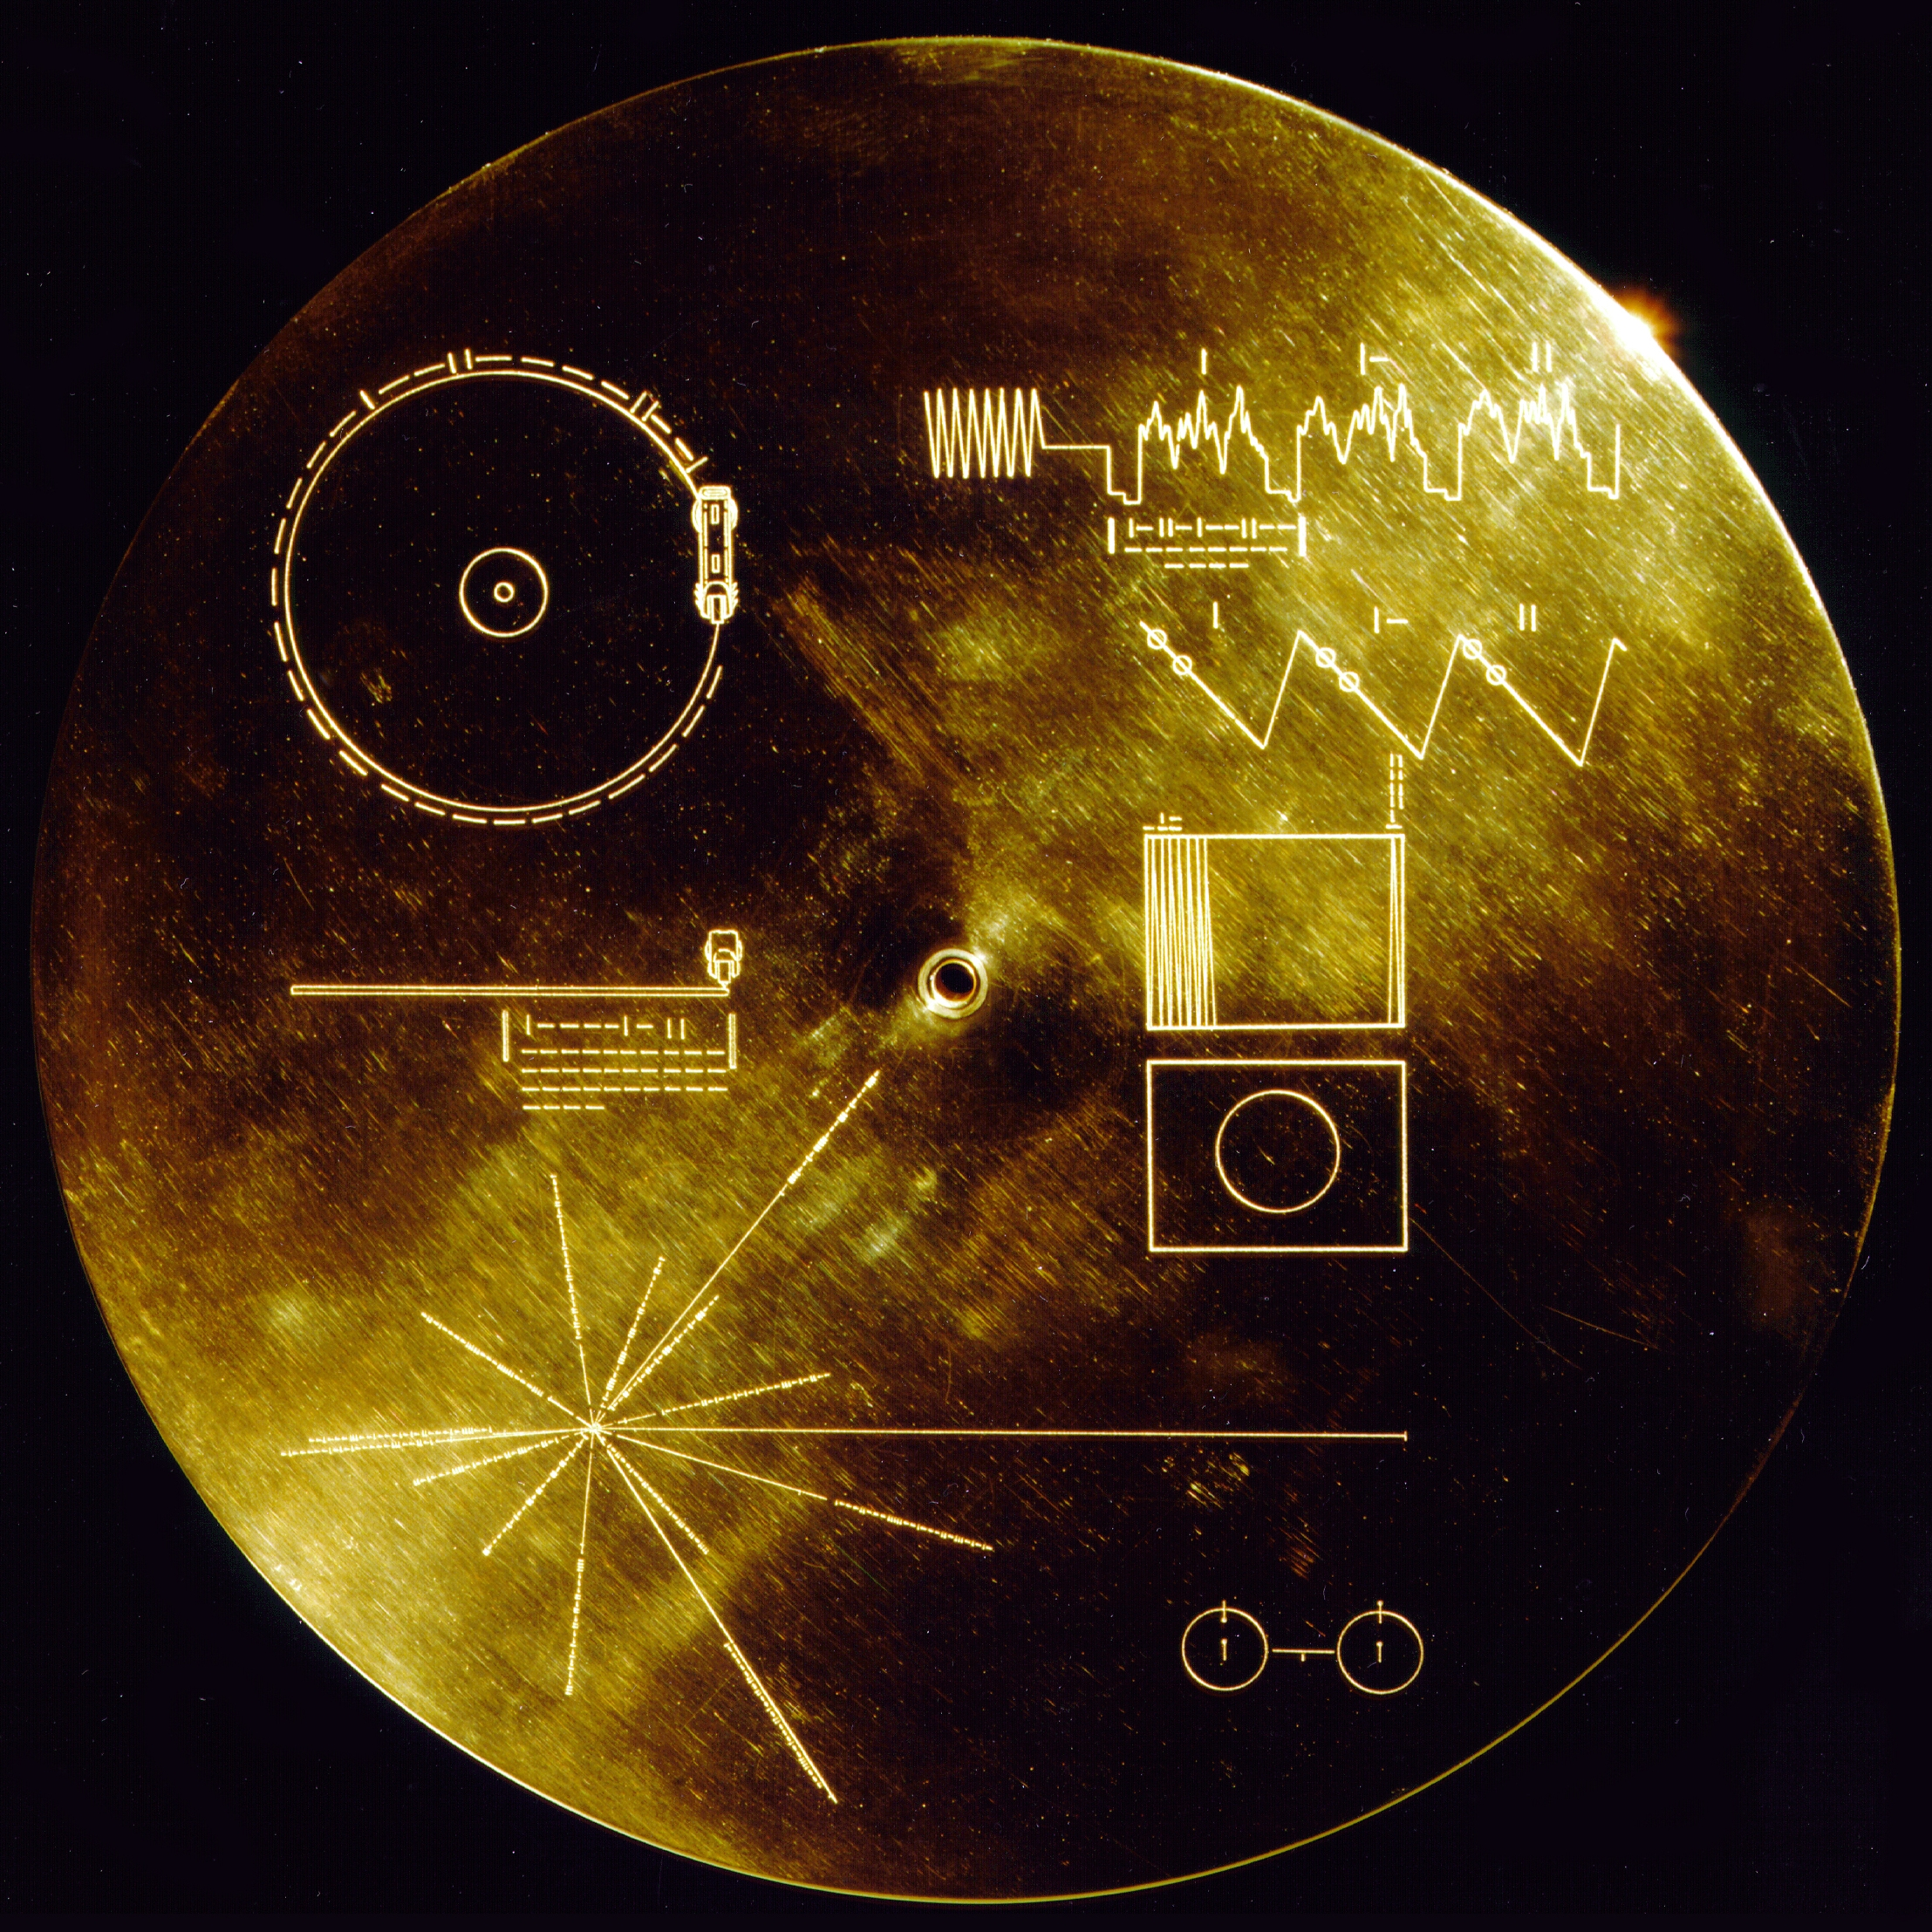 MSS: Ep 112: Jon Lomberg, the Voyager Gold Record, and the ...